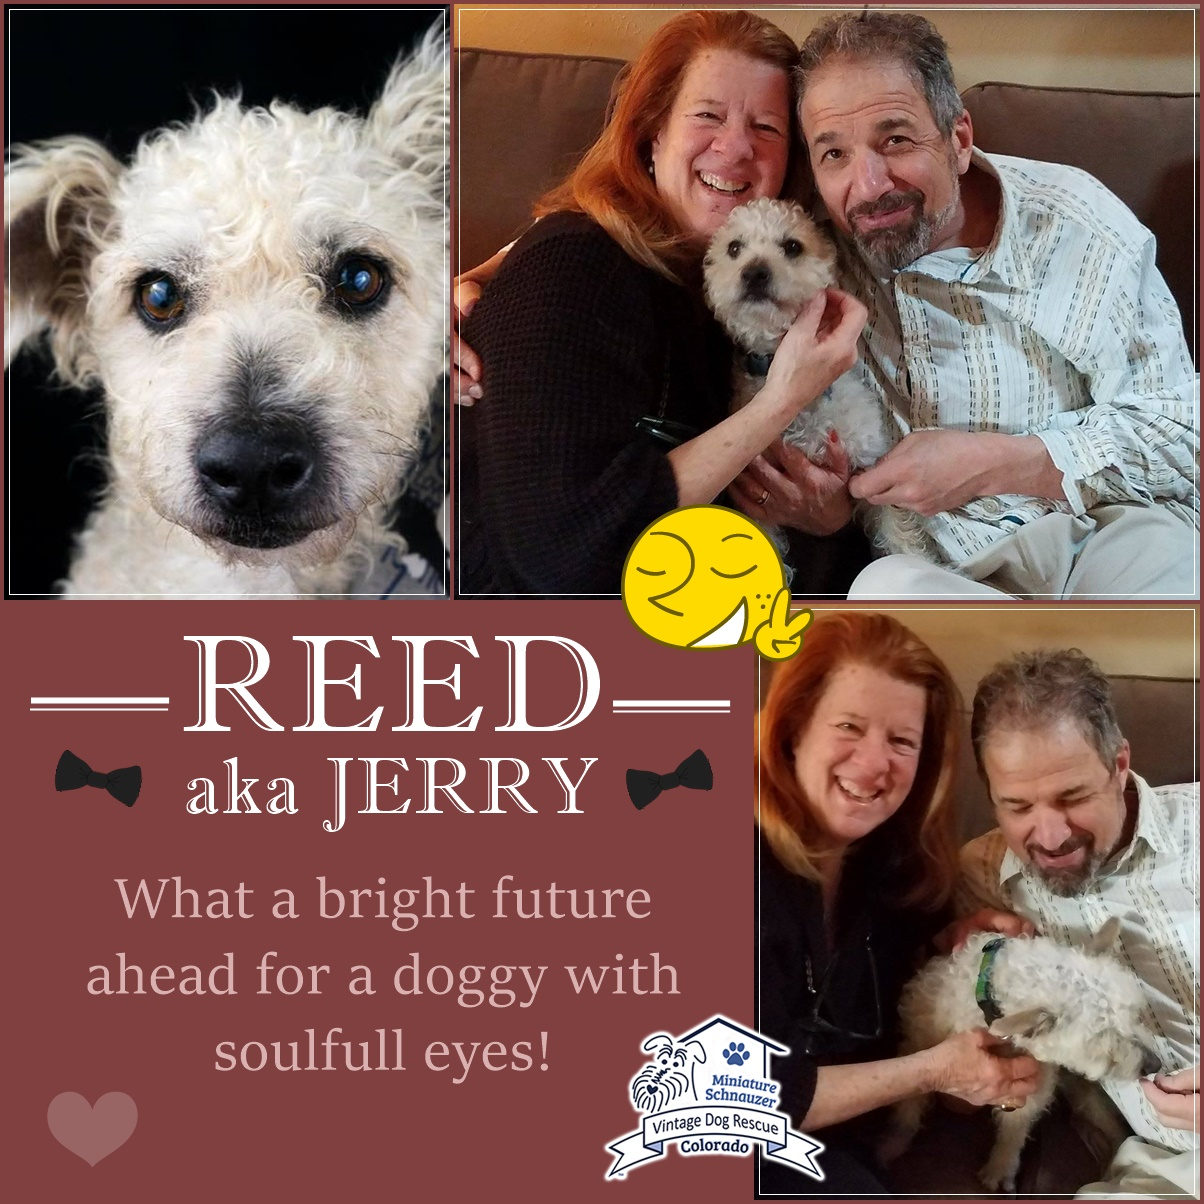 Reed was adopted!